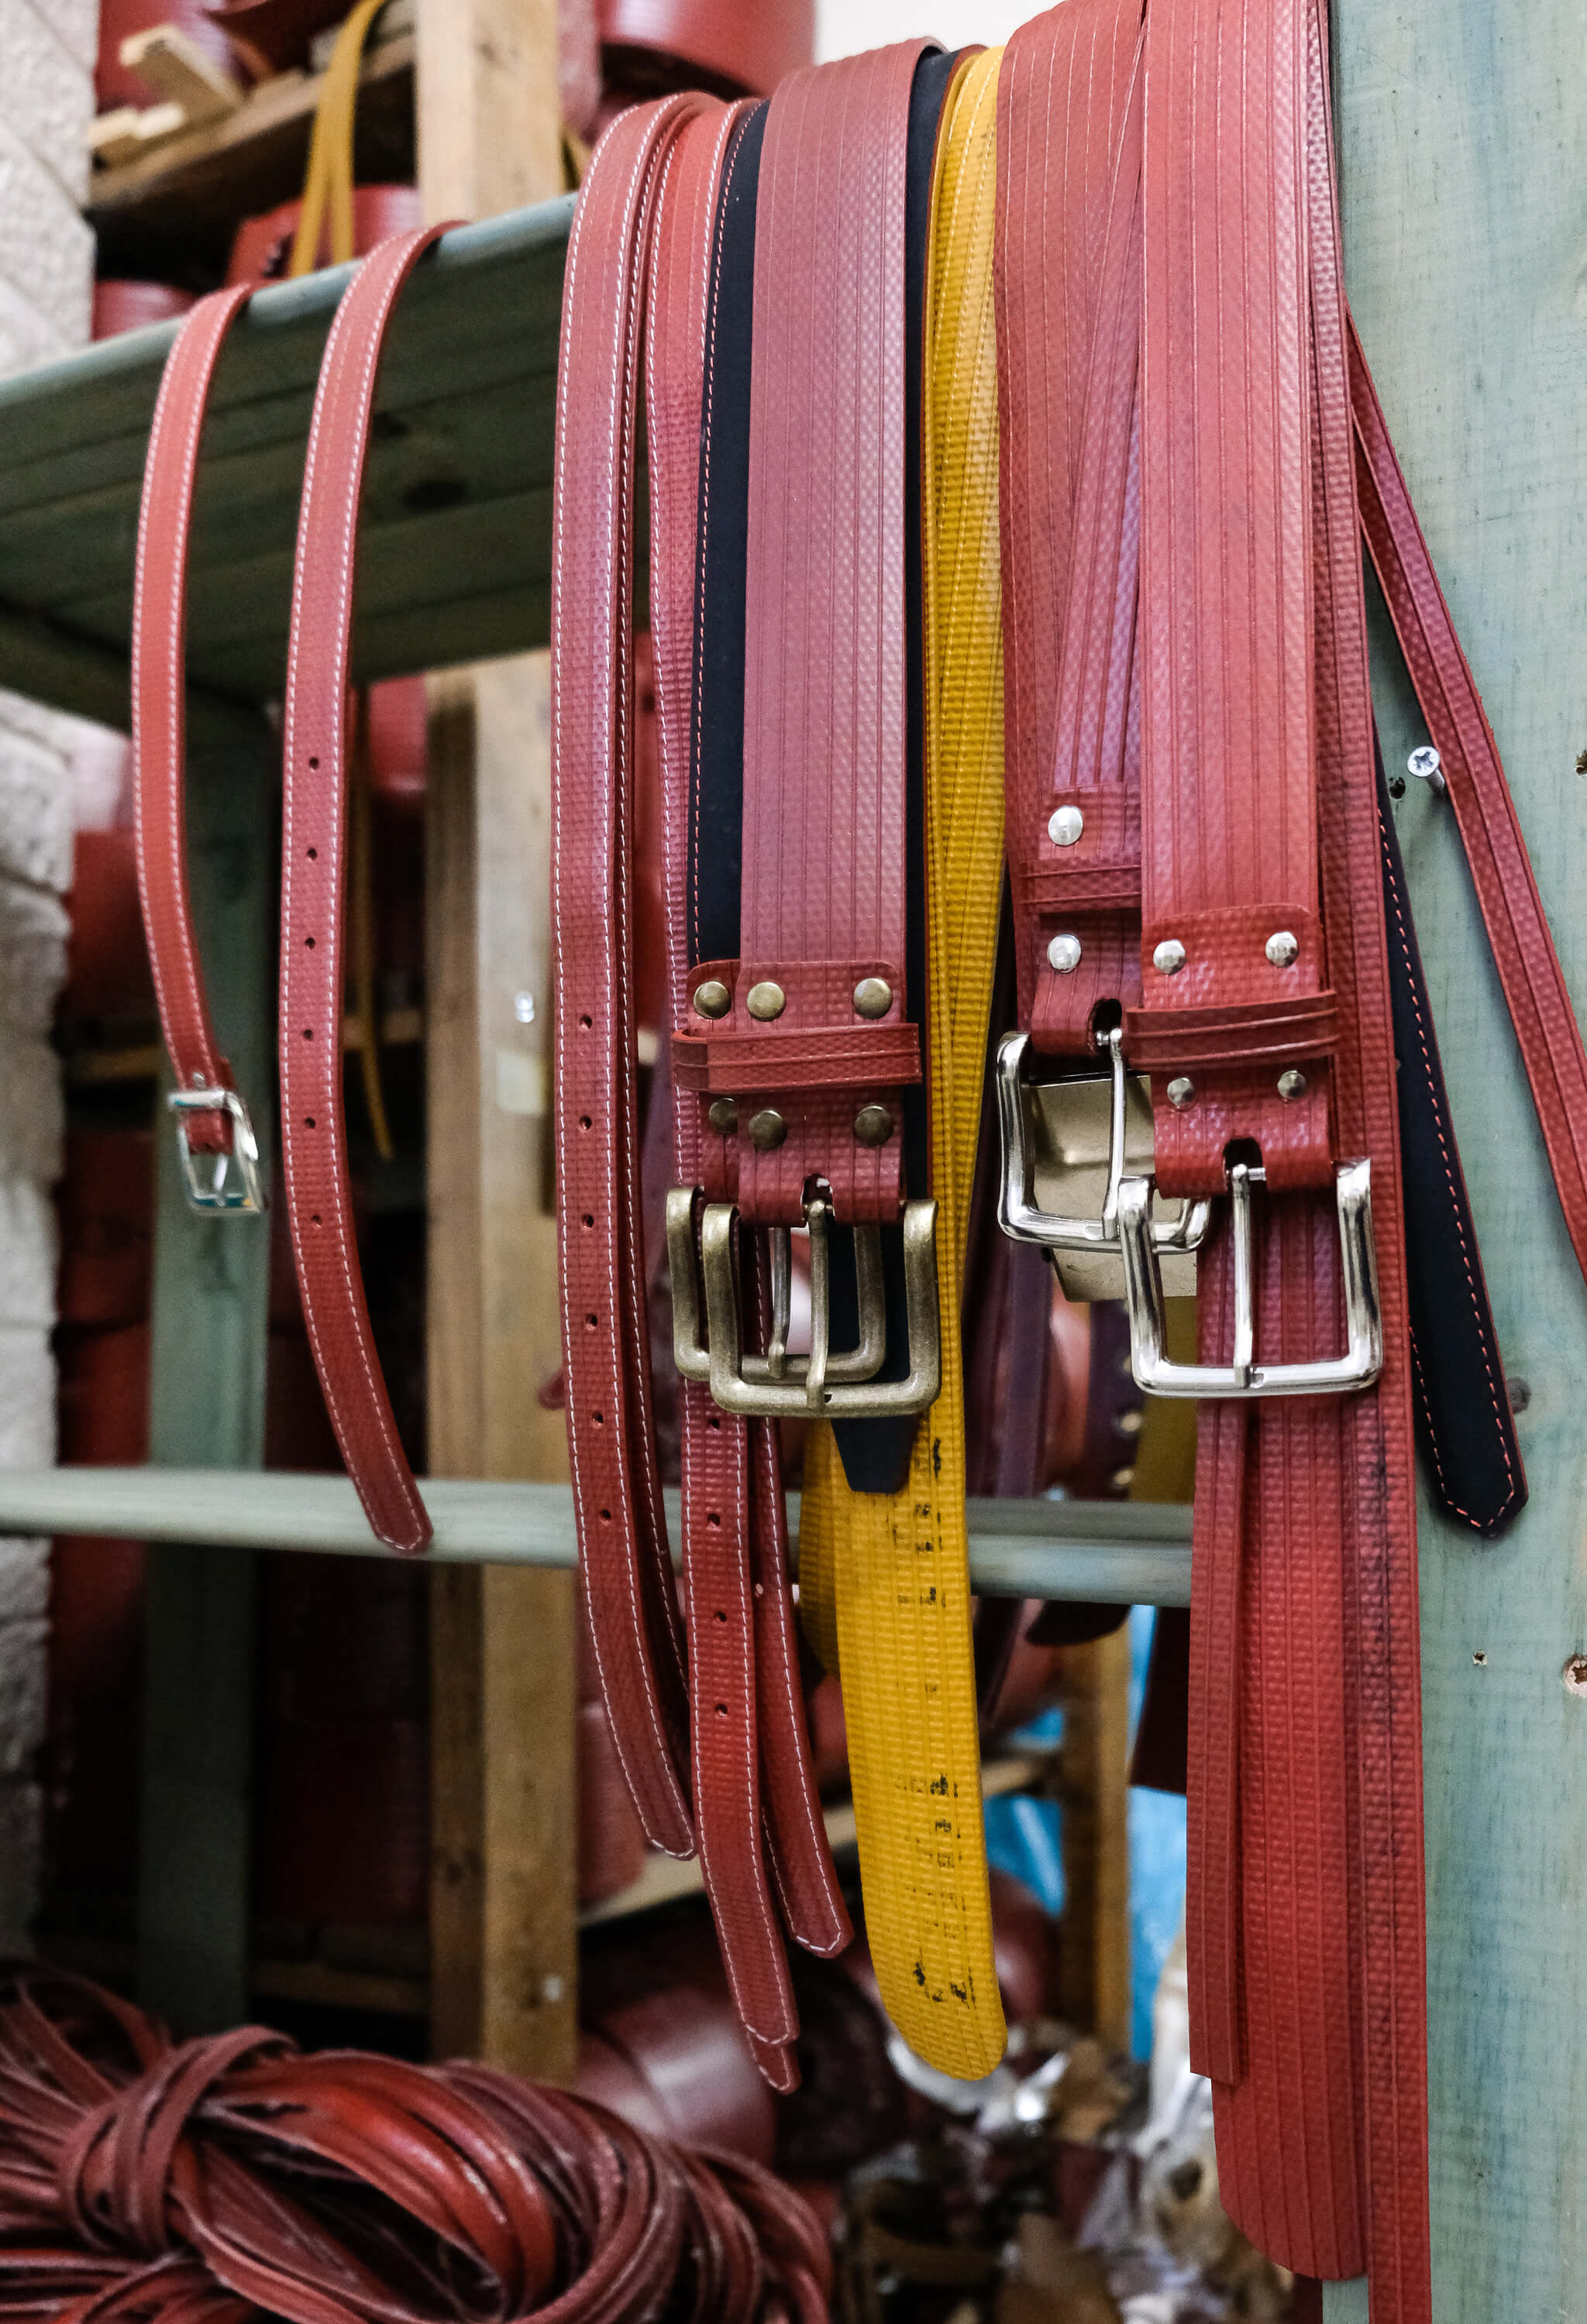 The belts Elvis & Kresse makes from fire hoses that otherwise would have gone to landfill.